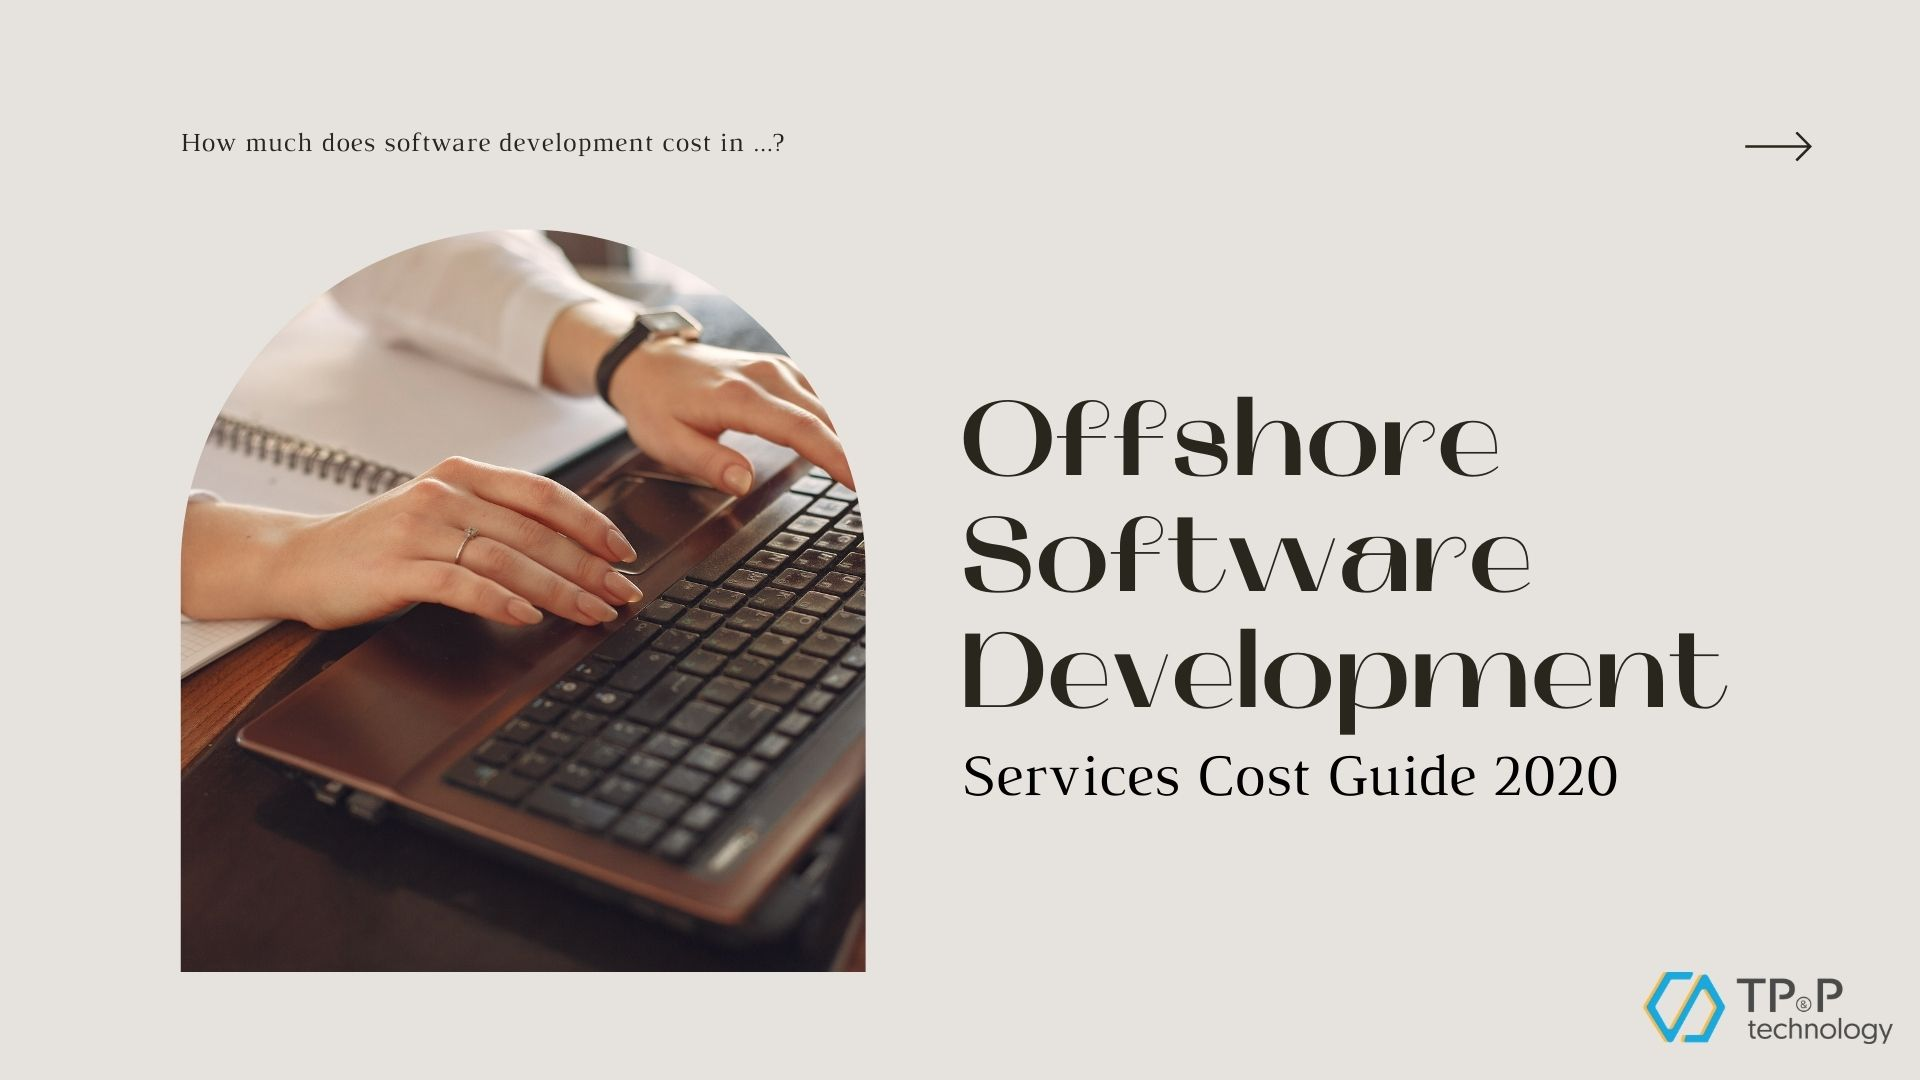 Offshore Software Development Rates By Country - Services Cost Guideline 2020